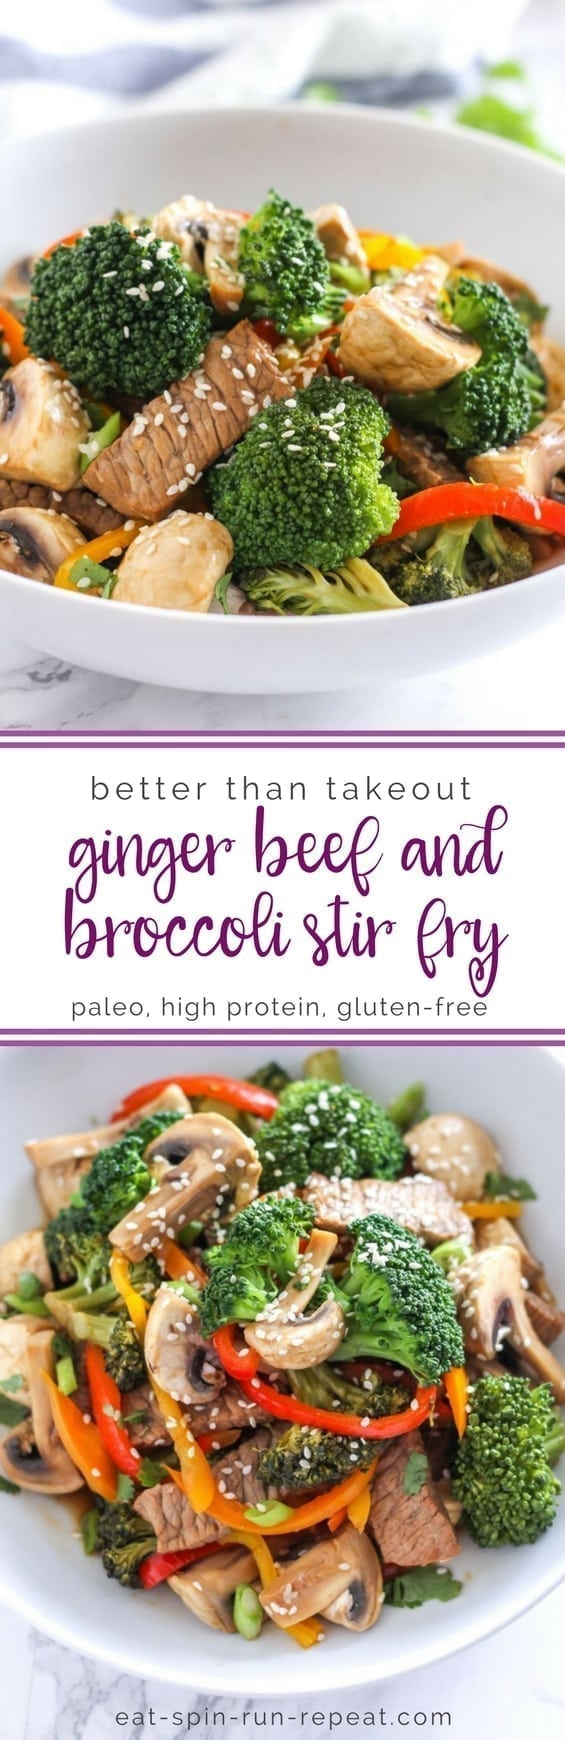 Paleo. gluten-free Ginger Beef and Broccoli Stir Fry - a perfect easy dinner idea that's high in protein and full of nutrition! || Eat Spin Run Repeat